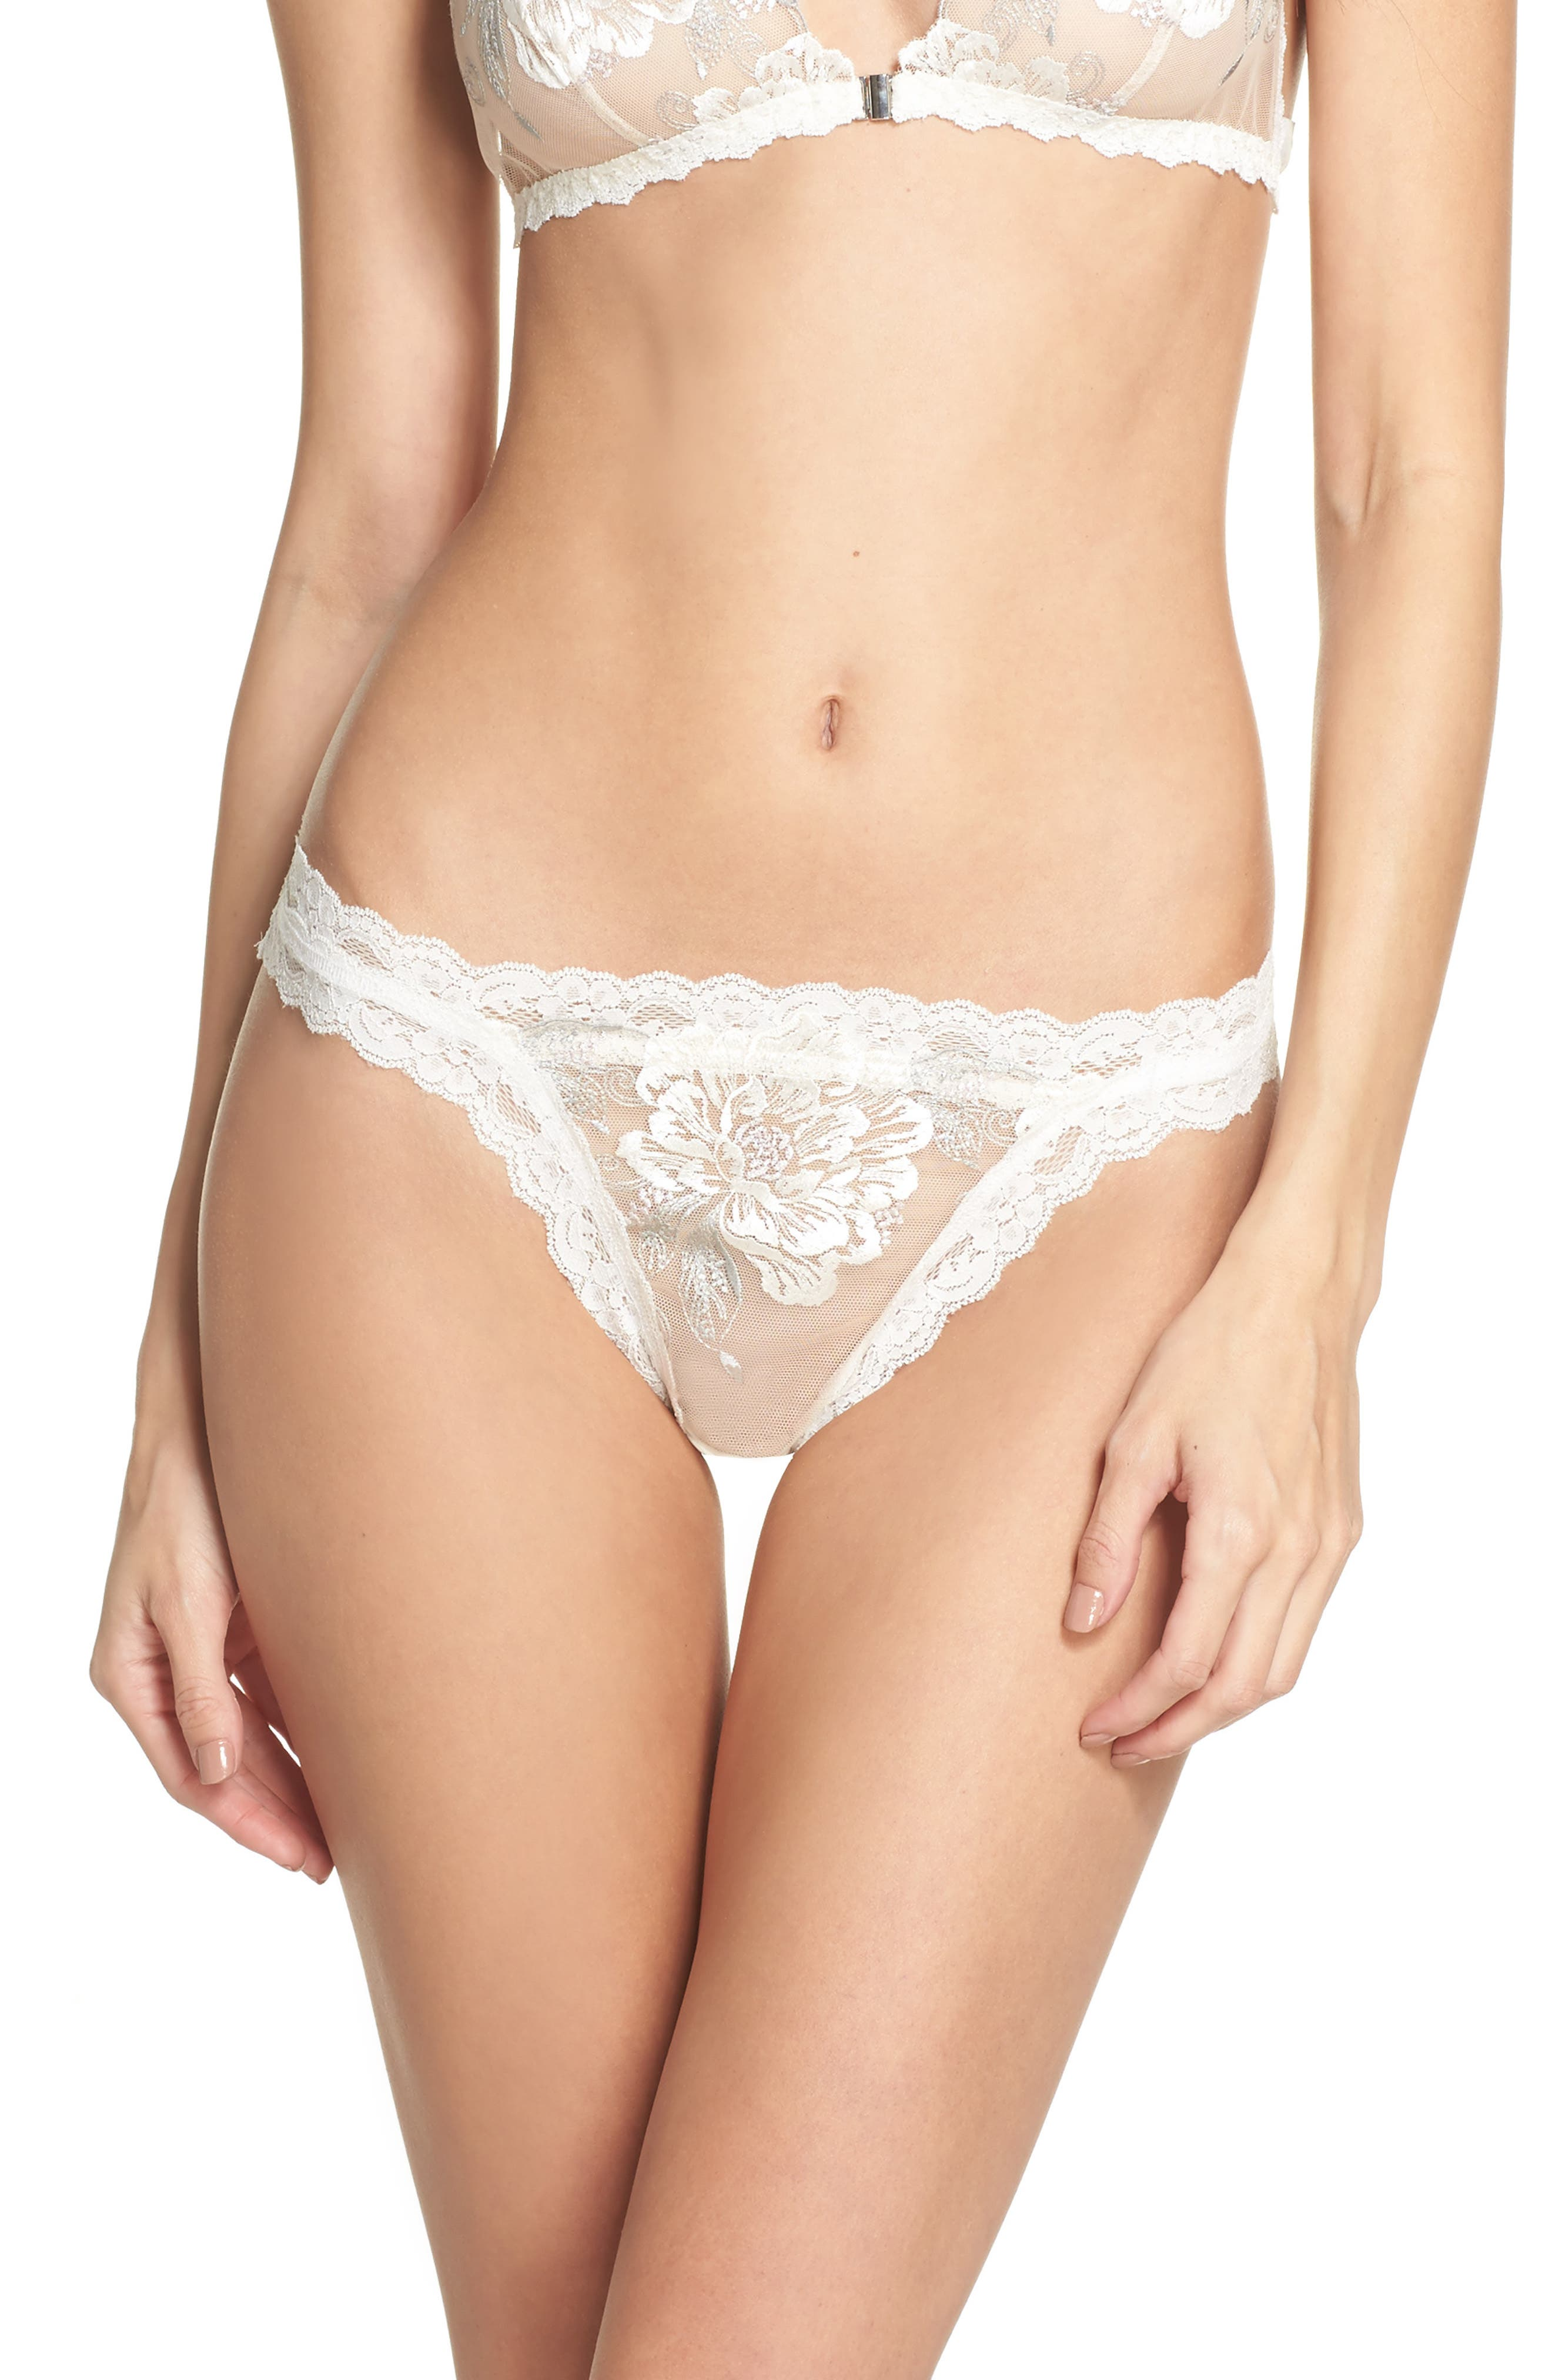 Floral Embroidered Bikini,                             Main thumbnail 1, color,                             Ivorgrypnk